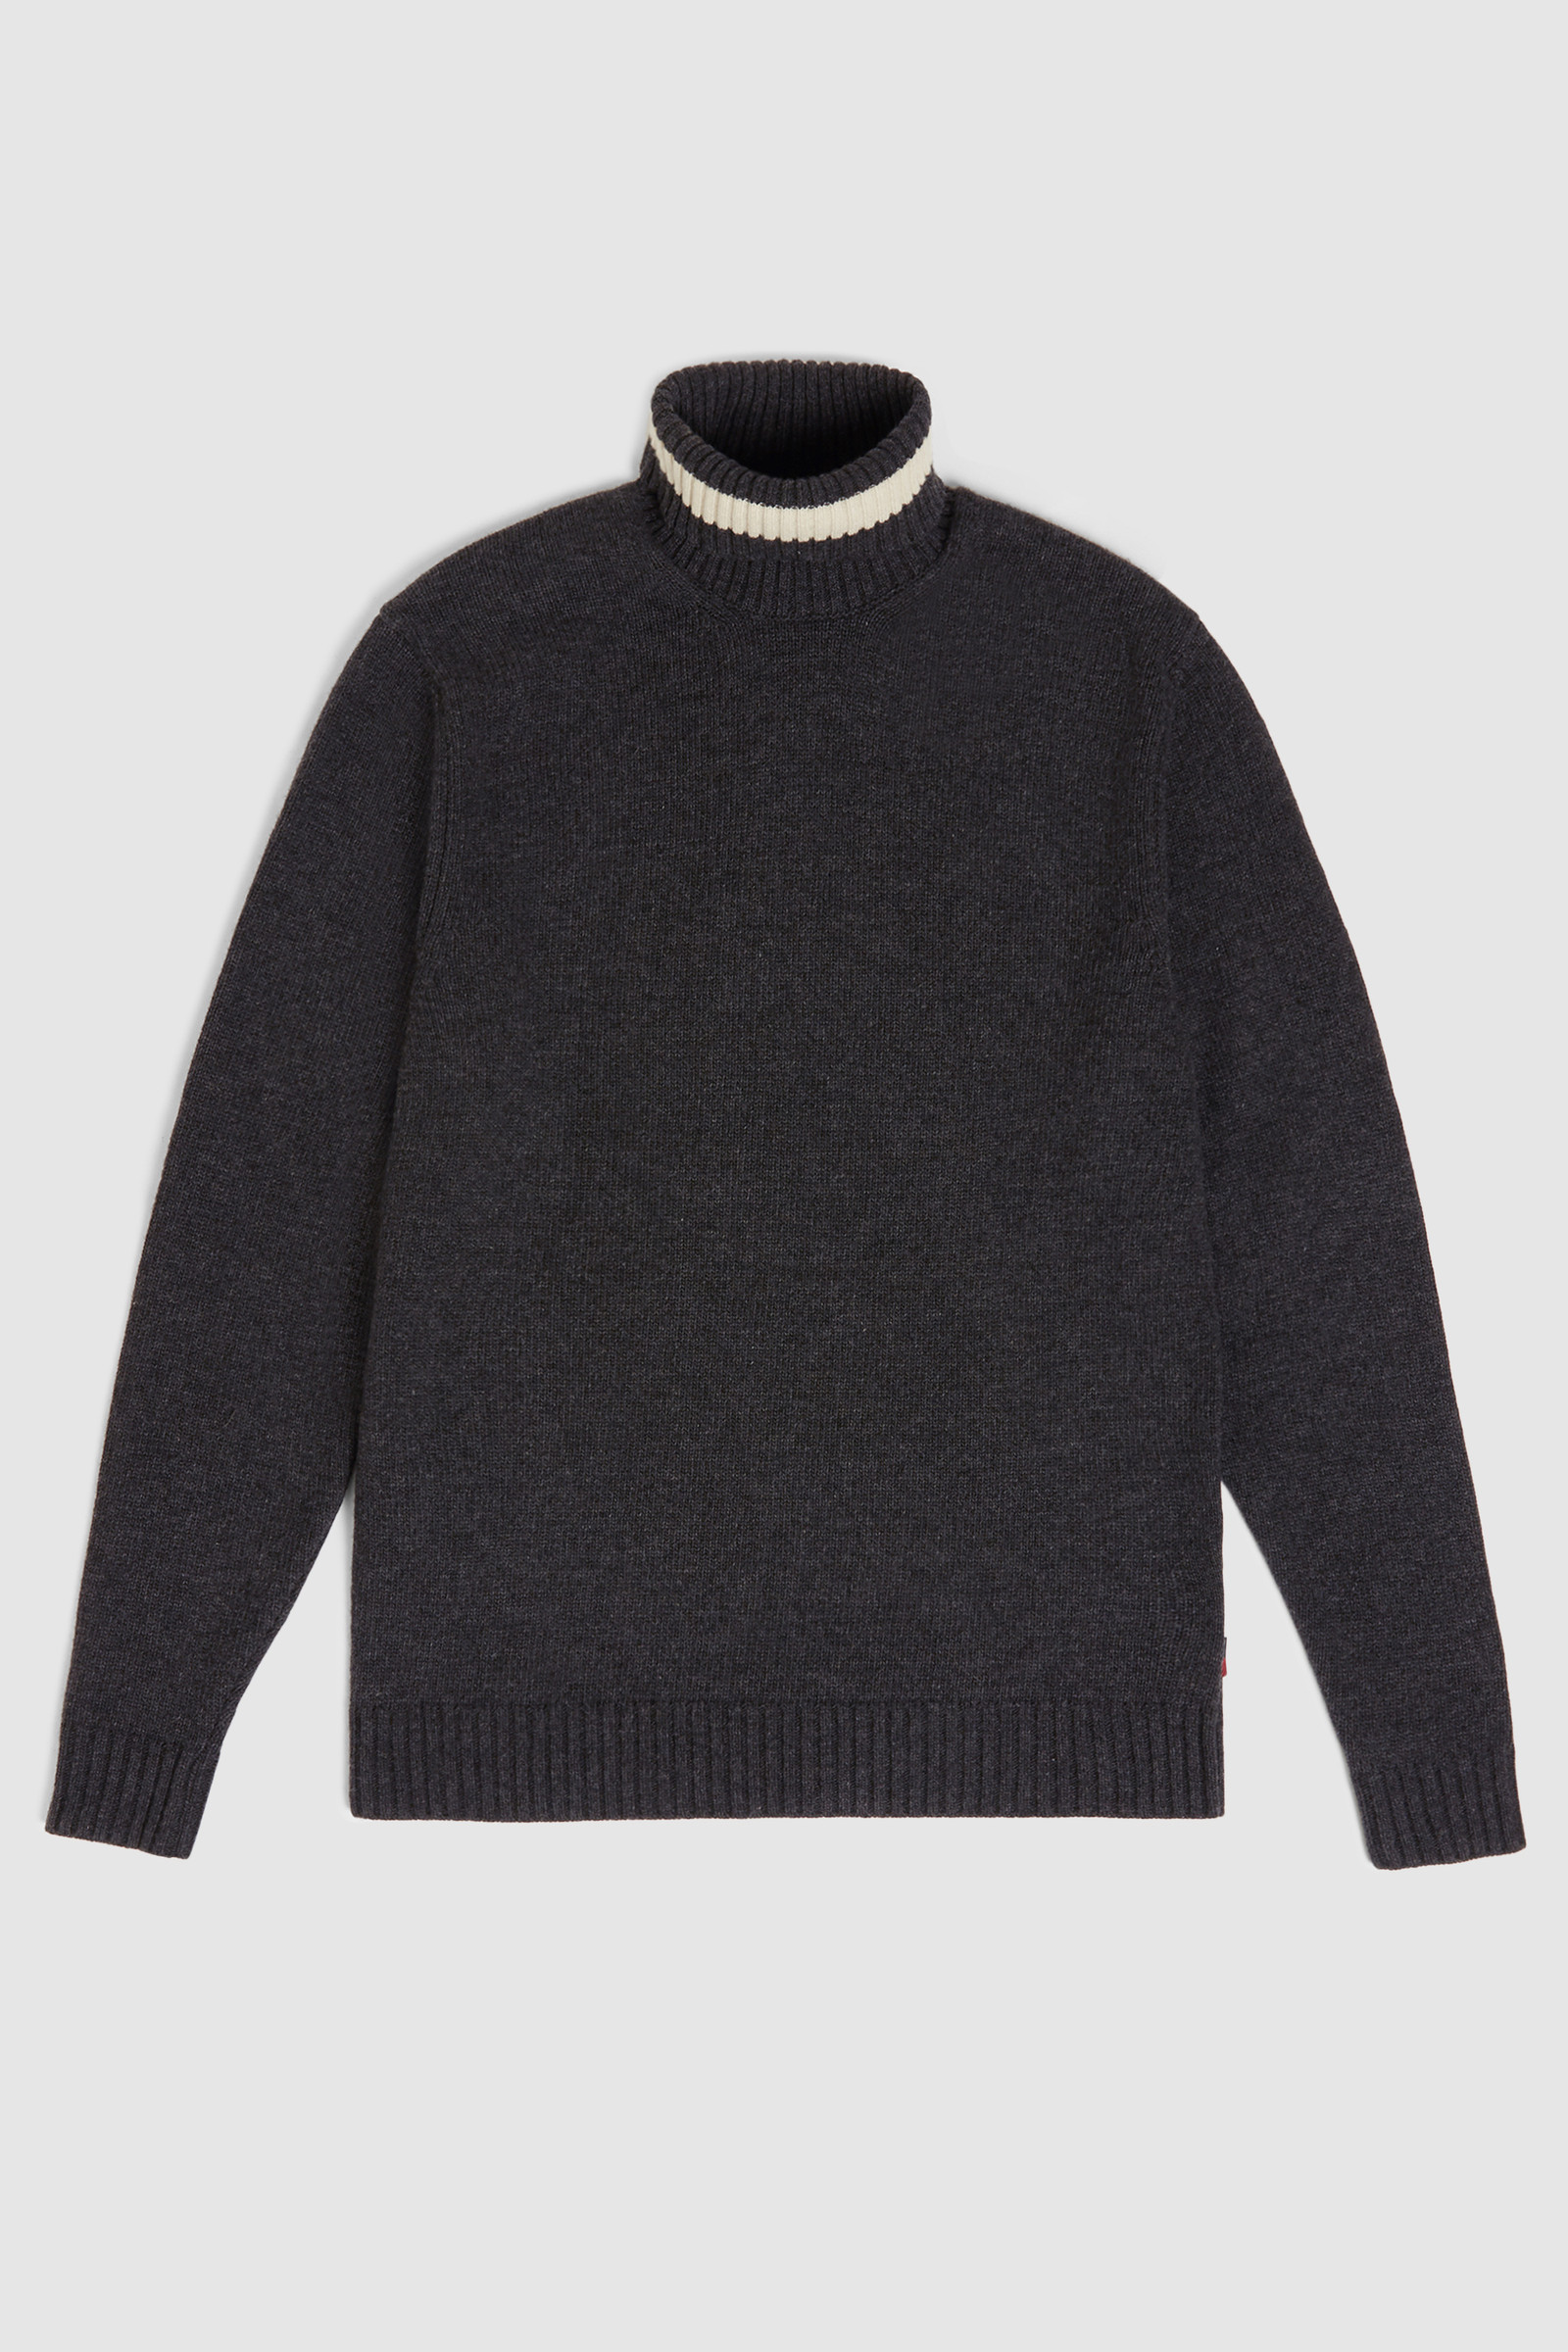 Wool Colour Block Crewneck Sweater